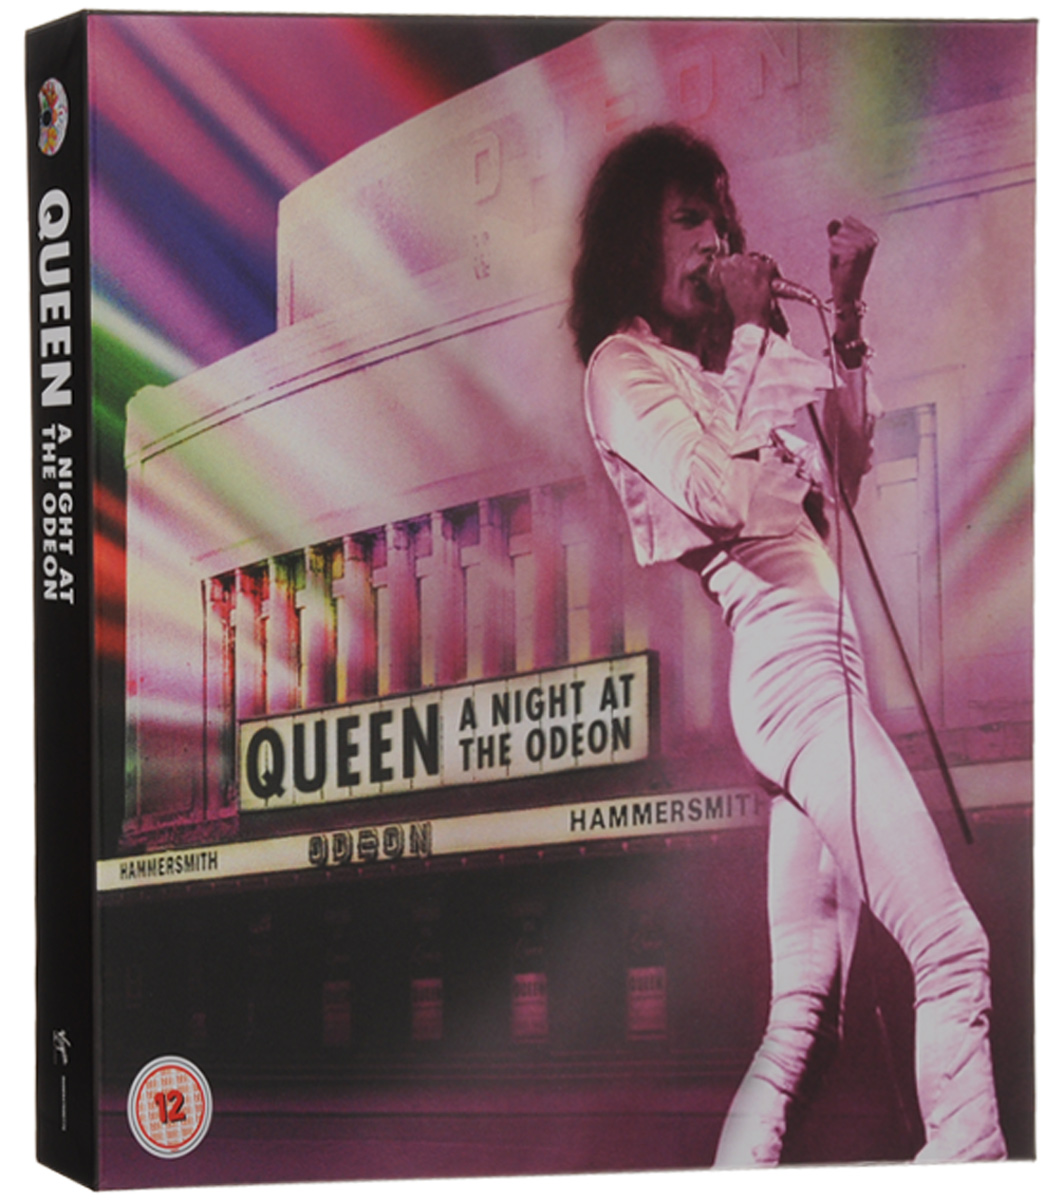 Queen Queen. A Night At The Odeon. Anniversary Limited Edition (CD + LP + DVD + Blu-ray)